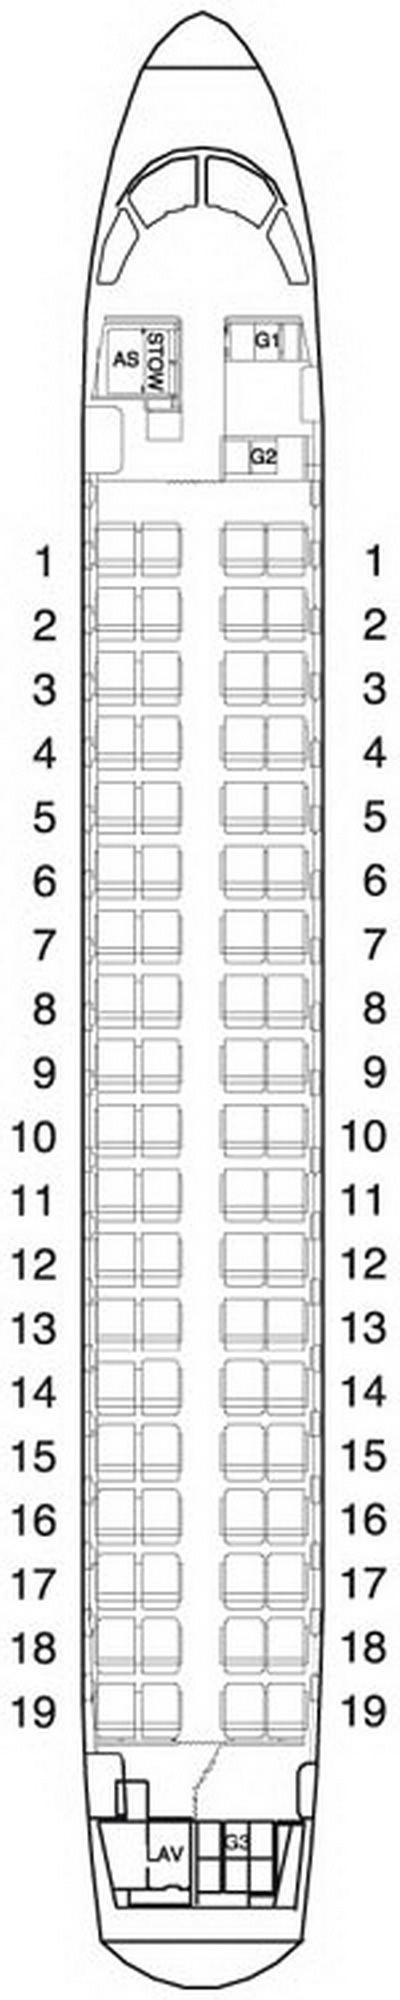 Embraer 170 Finnair Airlines Seating Chart Embraer 170 Finnair Airlines Seating Chart Decor Design Mirror